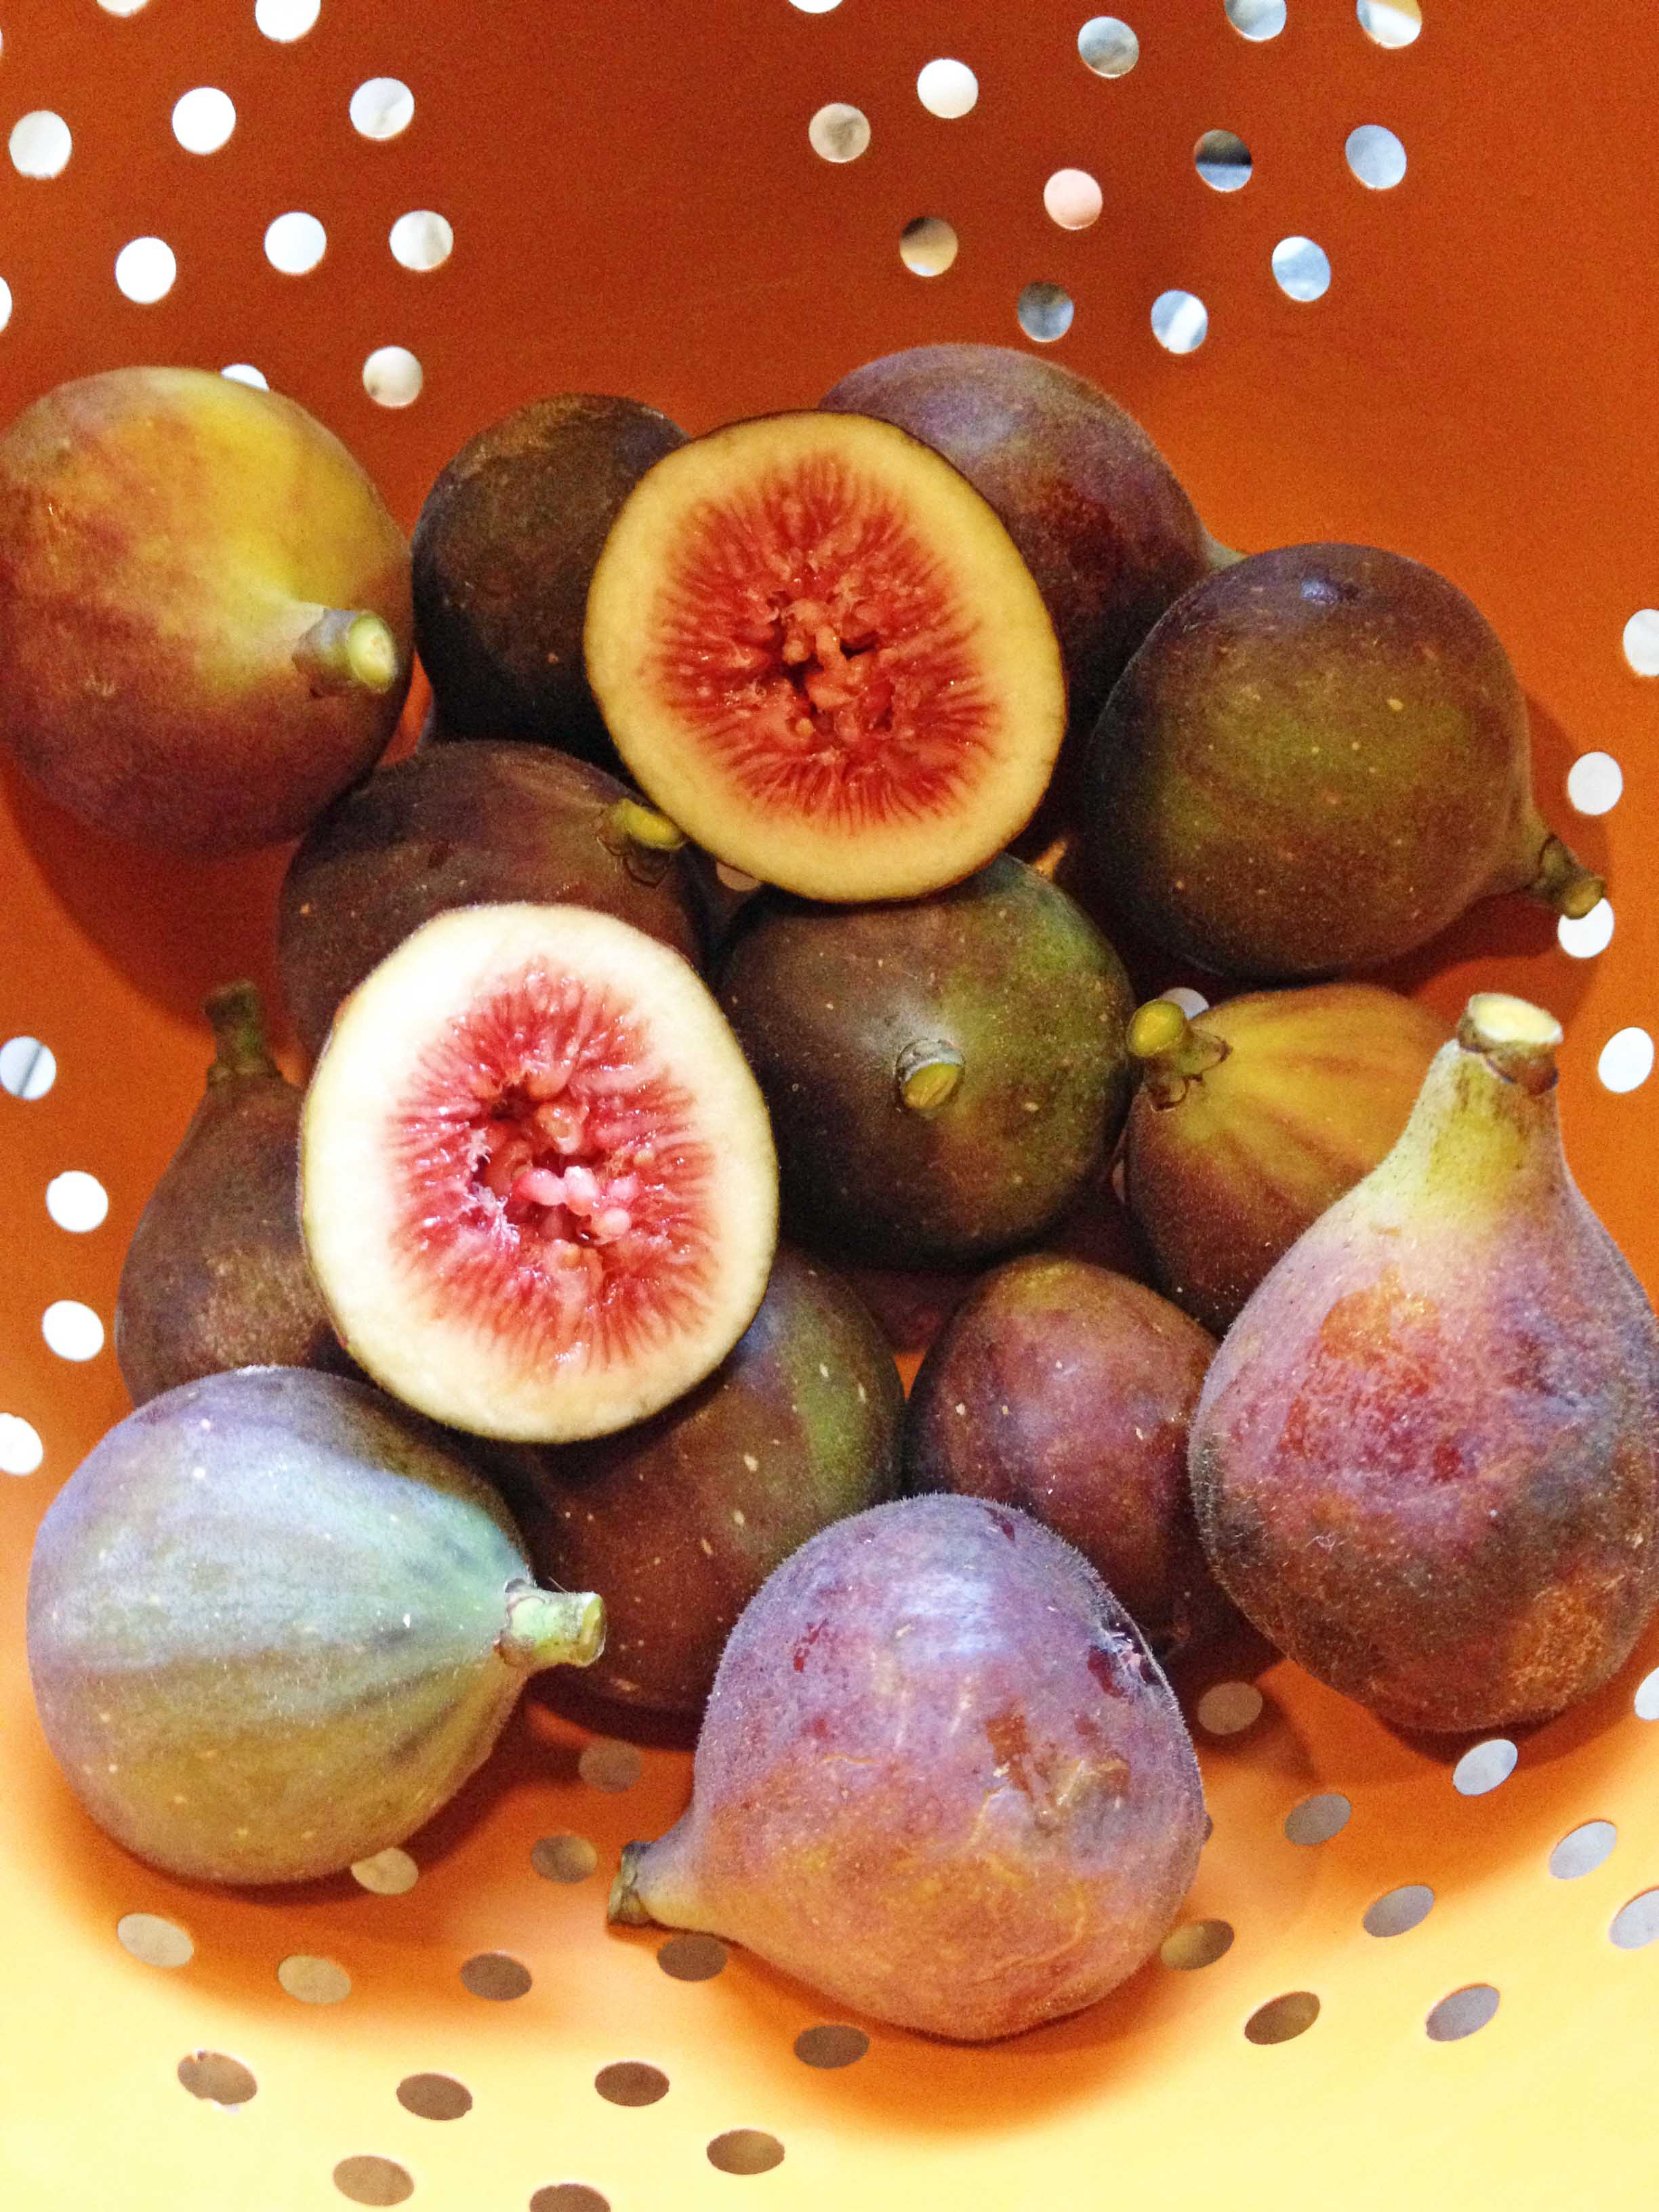 fig photo e smaller